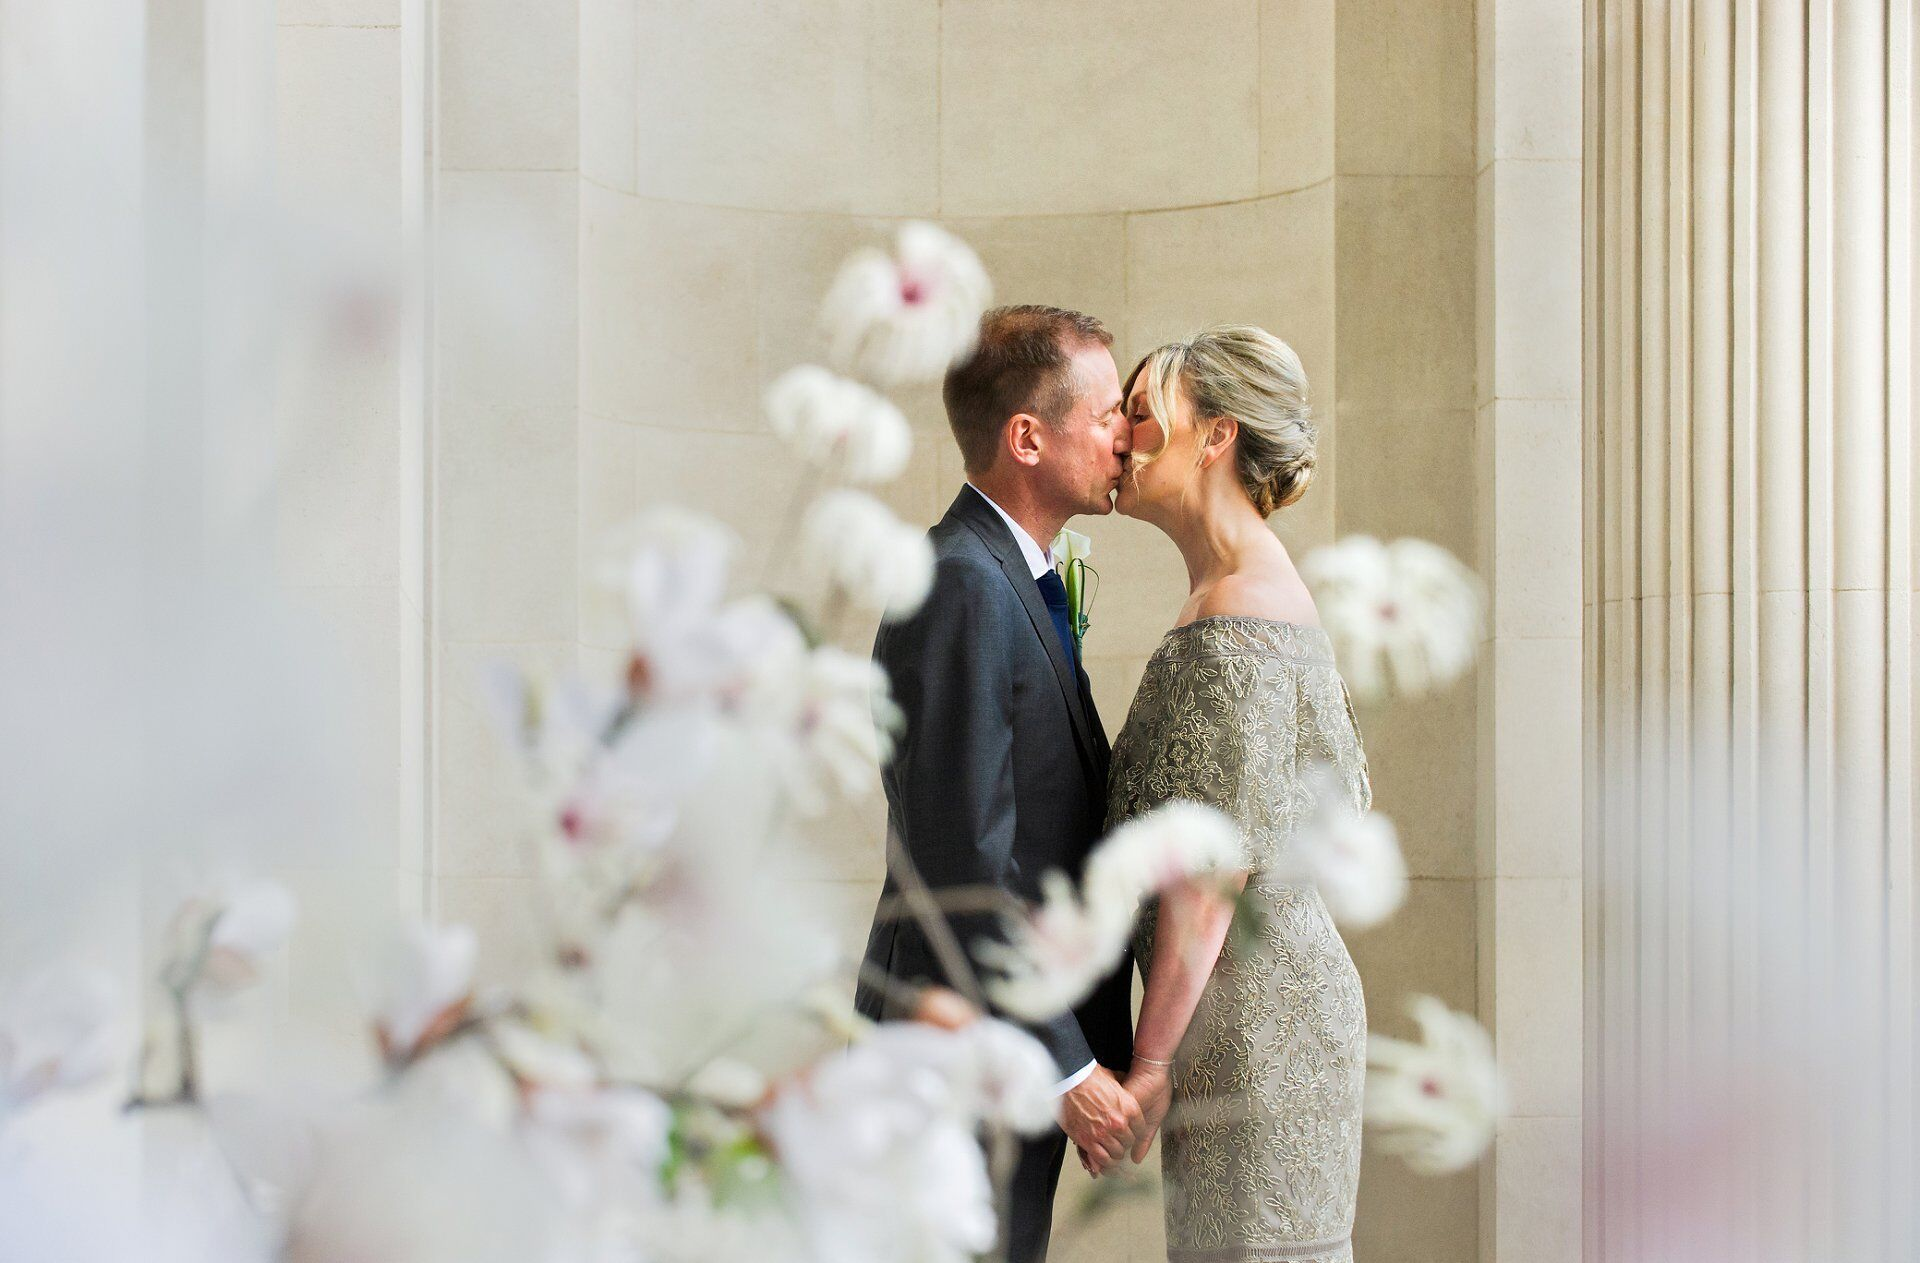 brenda and michael share a private kiss after their paddington room wedding ceremony by old marylebone town hall wedding photographer emma duggan